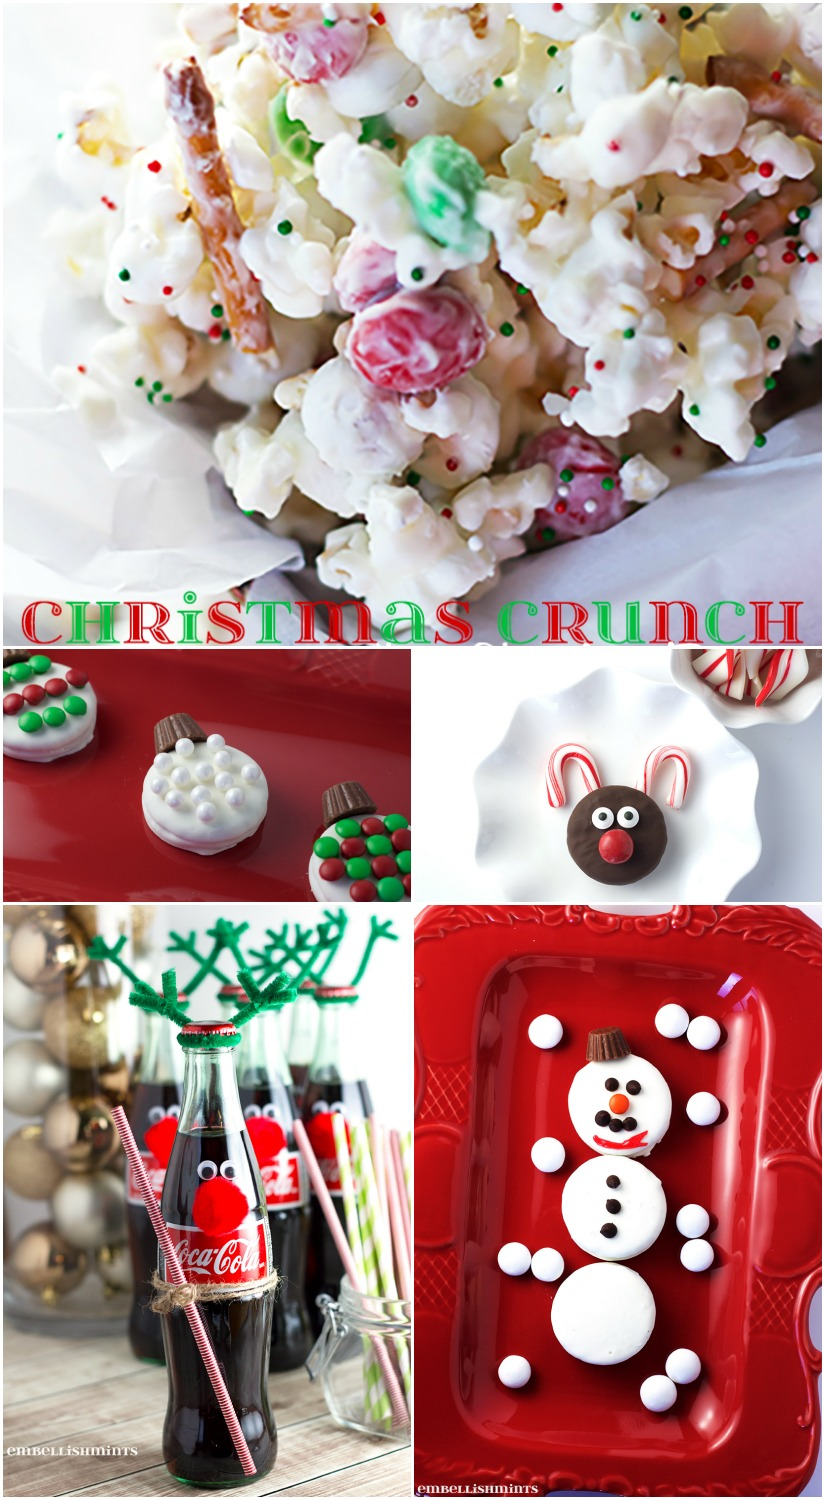 christmas party food ideas for kids embellishmints